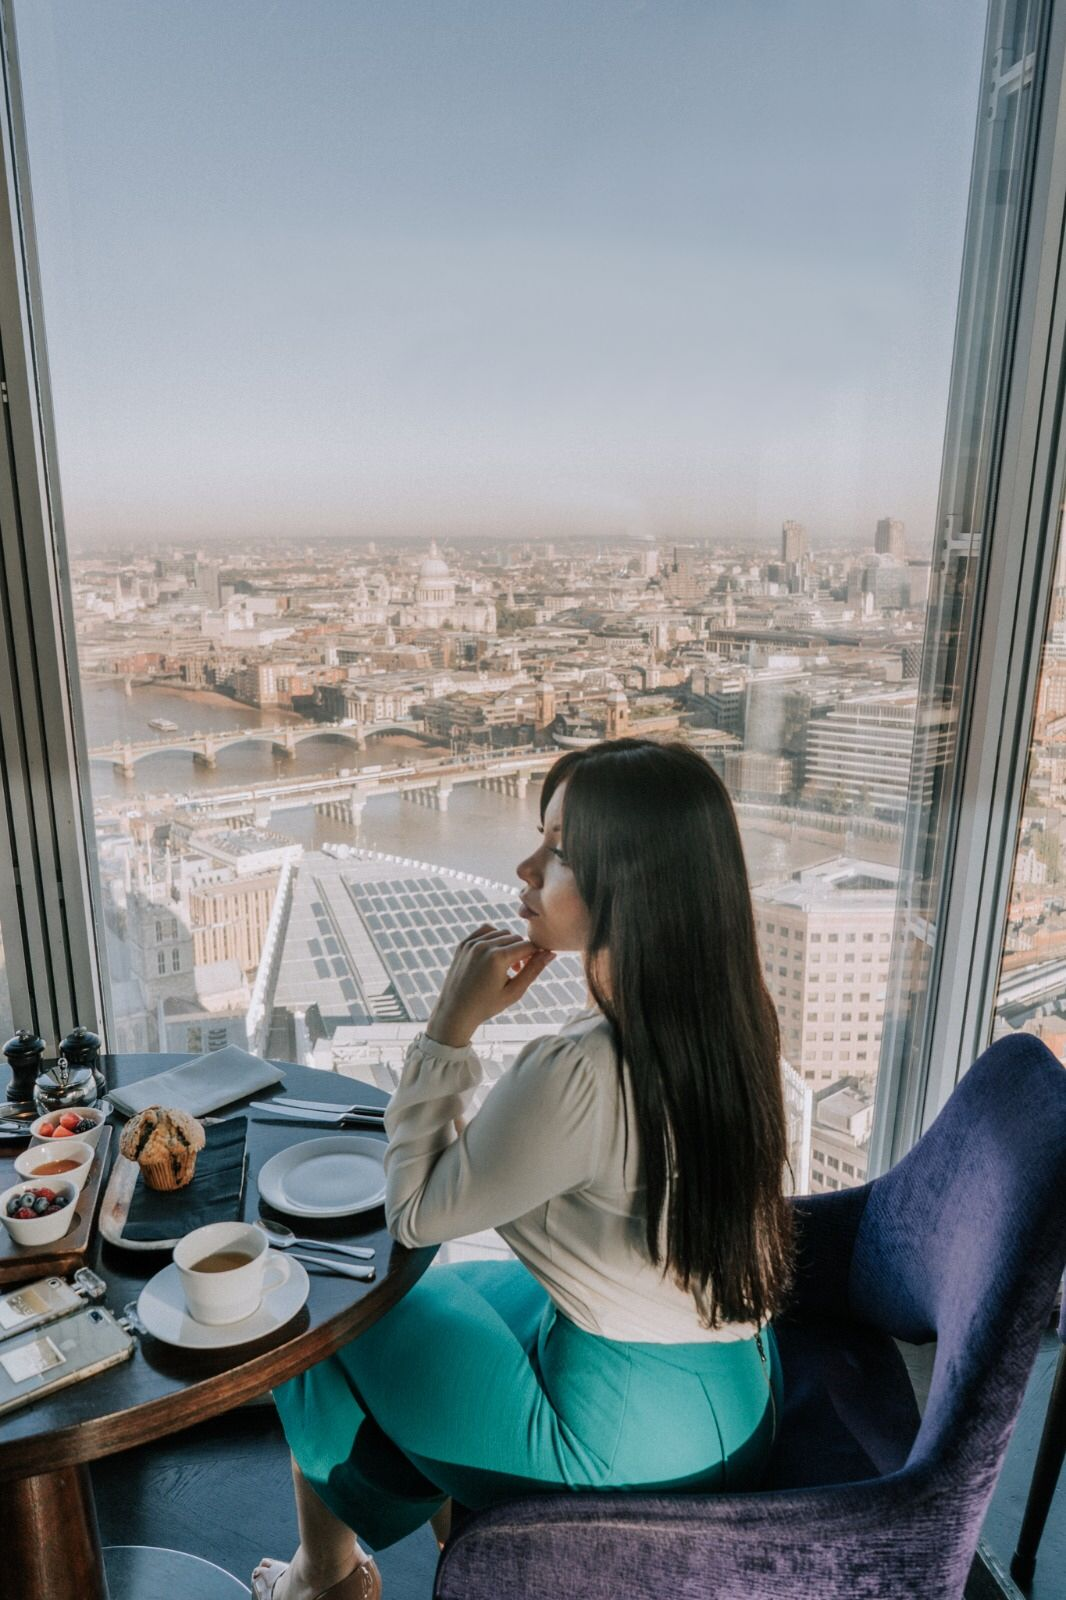 5 Top London Skybars For A Romantic Valentine S Aqua Shard Bokan Aviary Rooftop Jin Bo Law Savage Garden Lond London City View London Attractions London